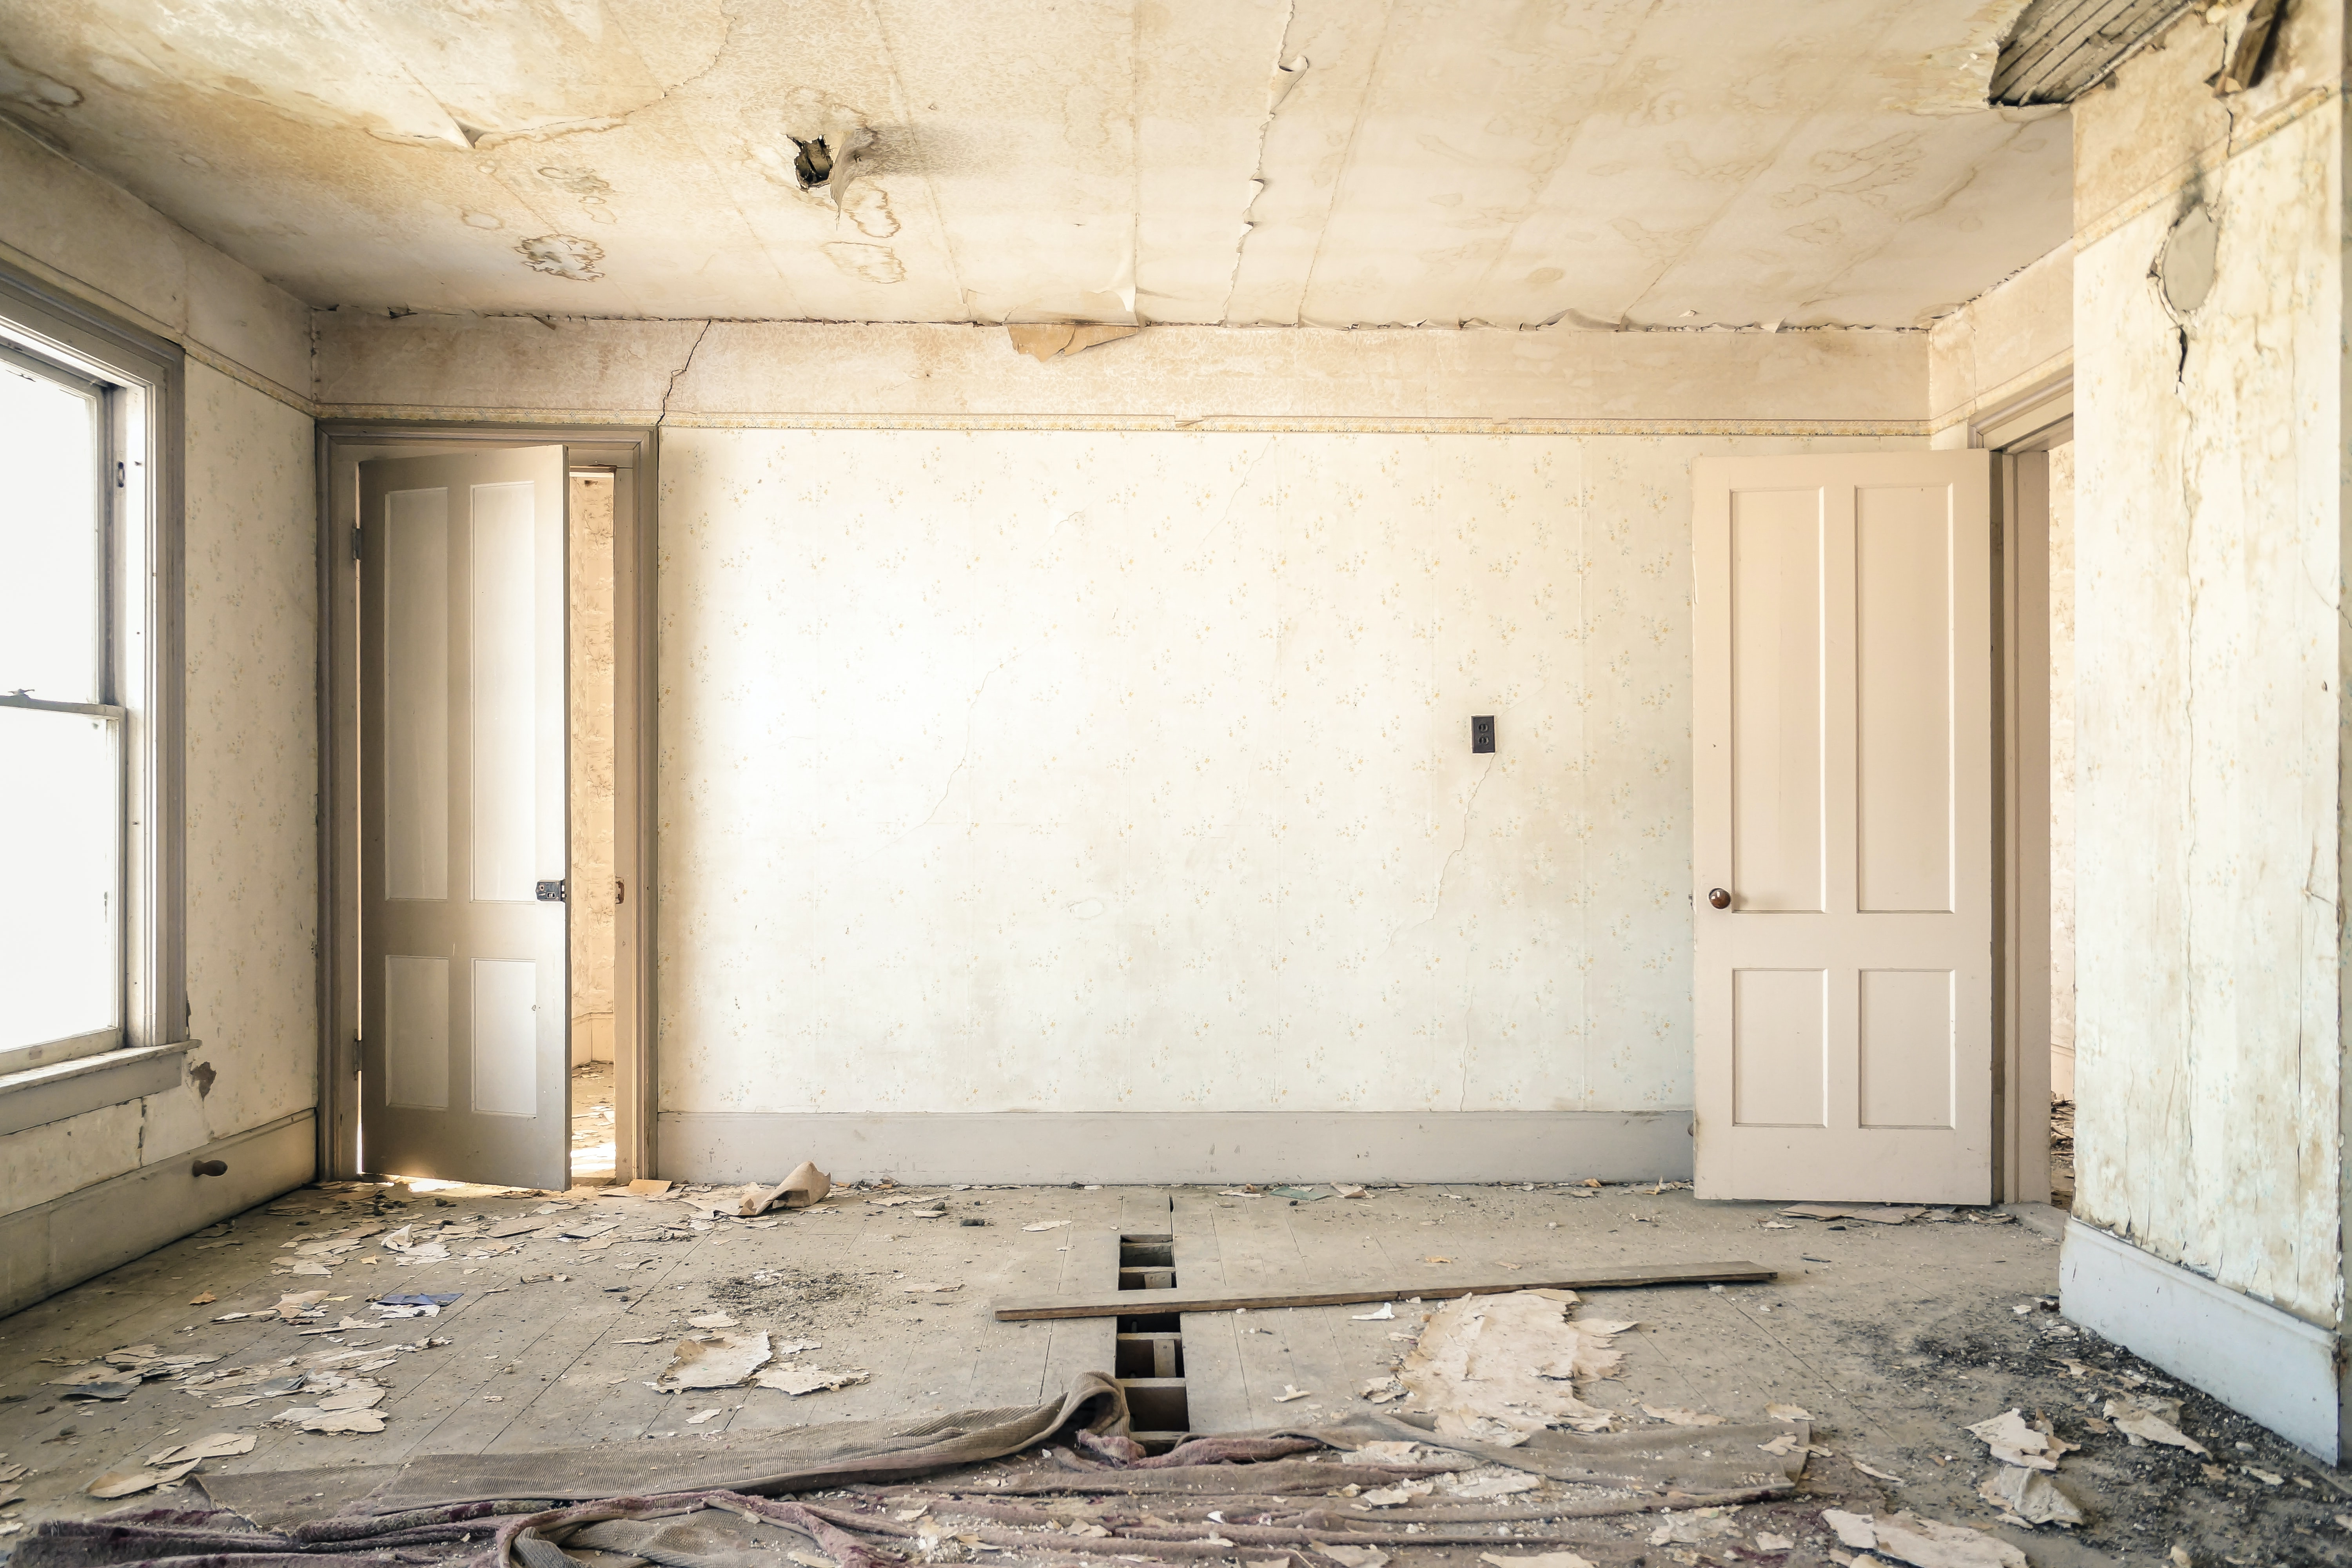 A dilapidated room in an abandoned house